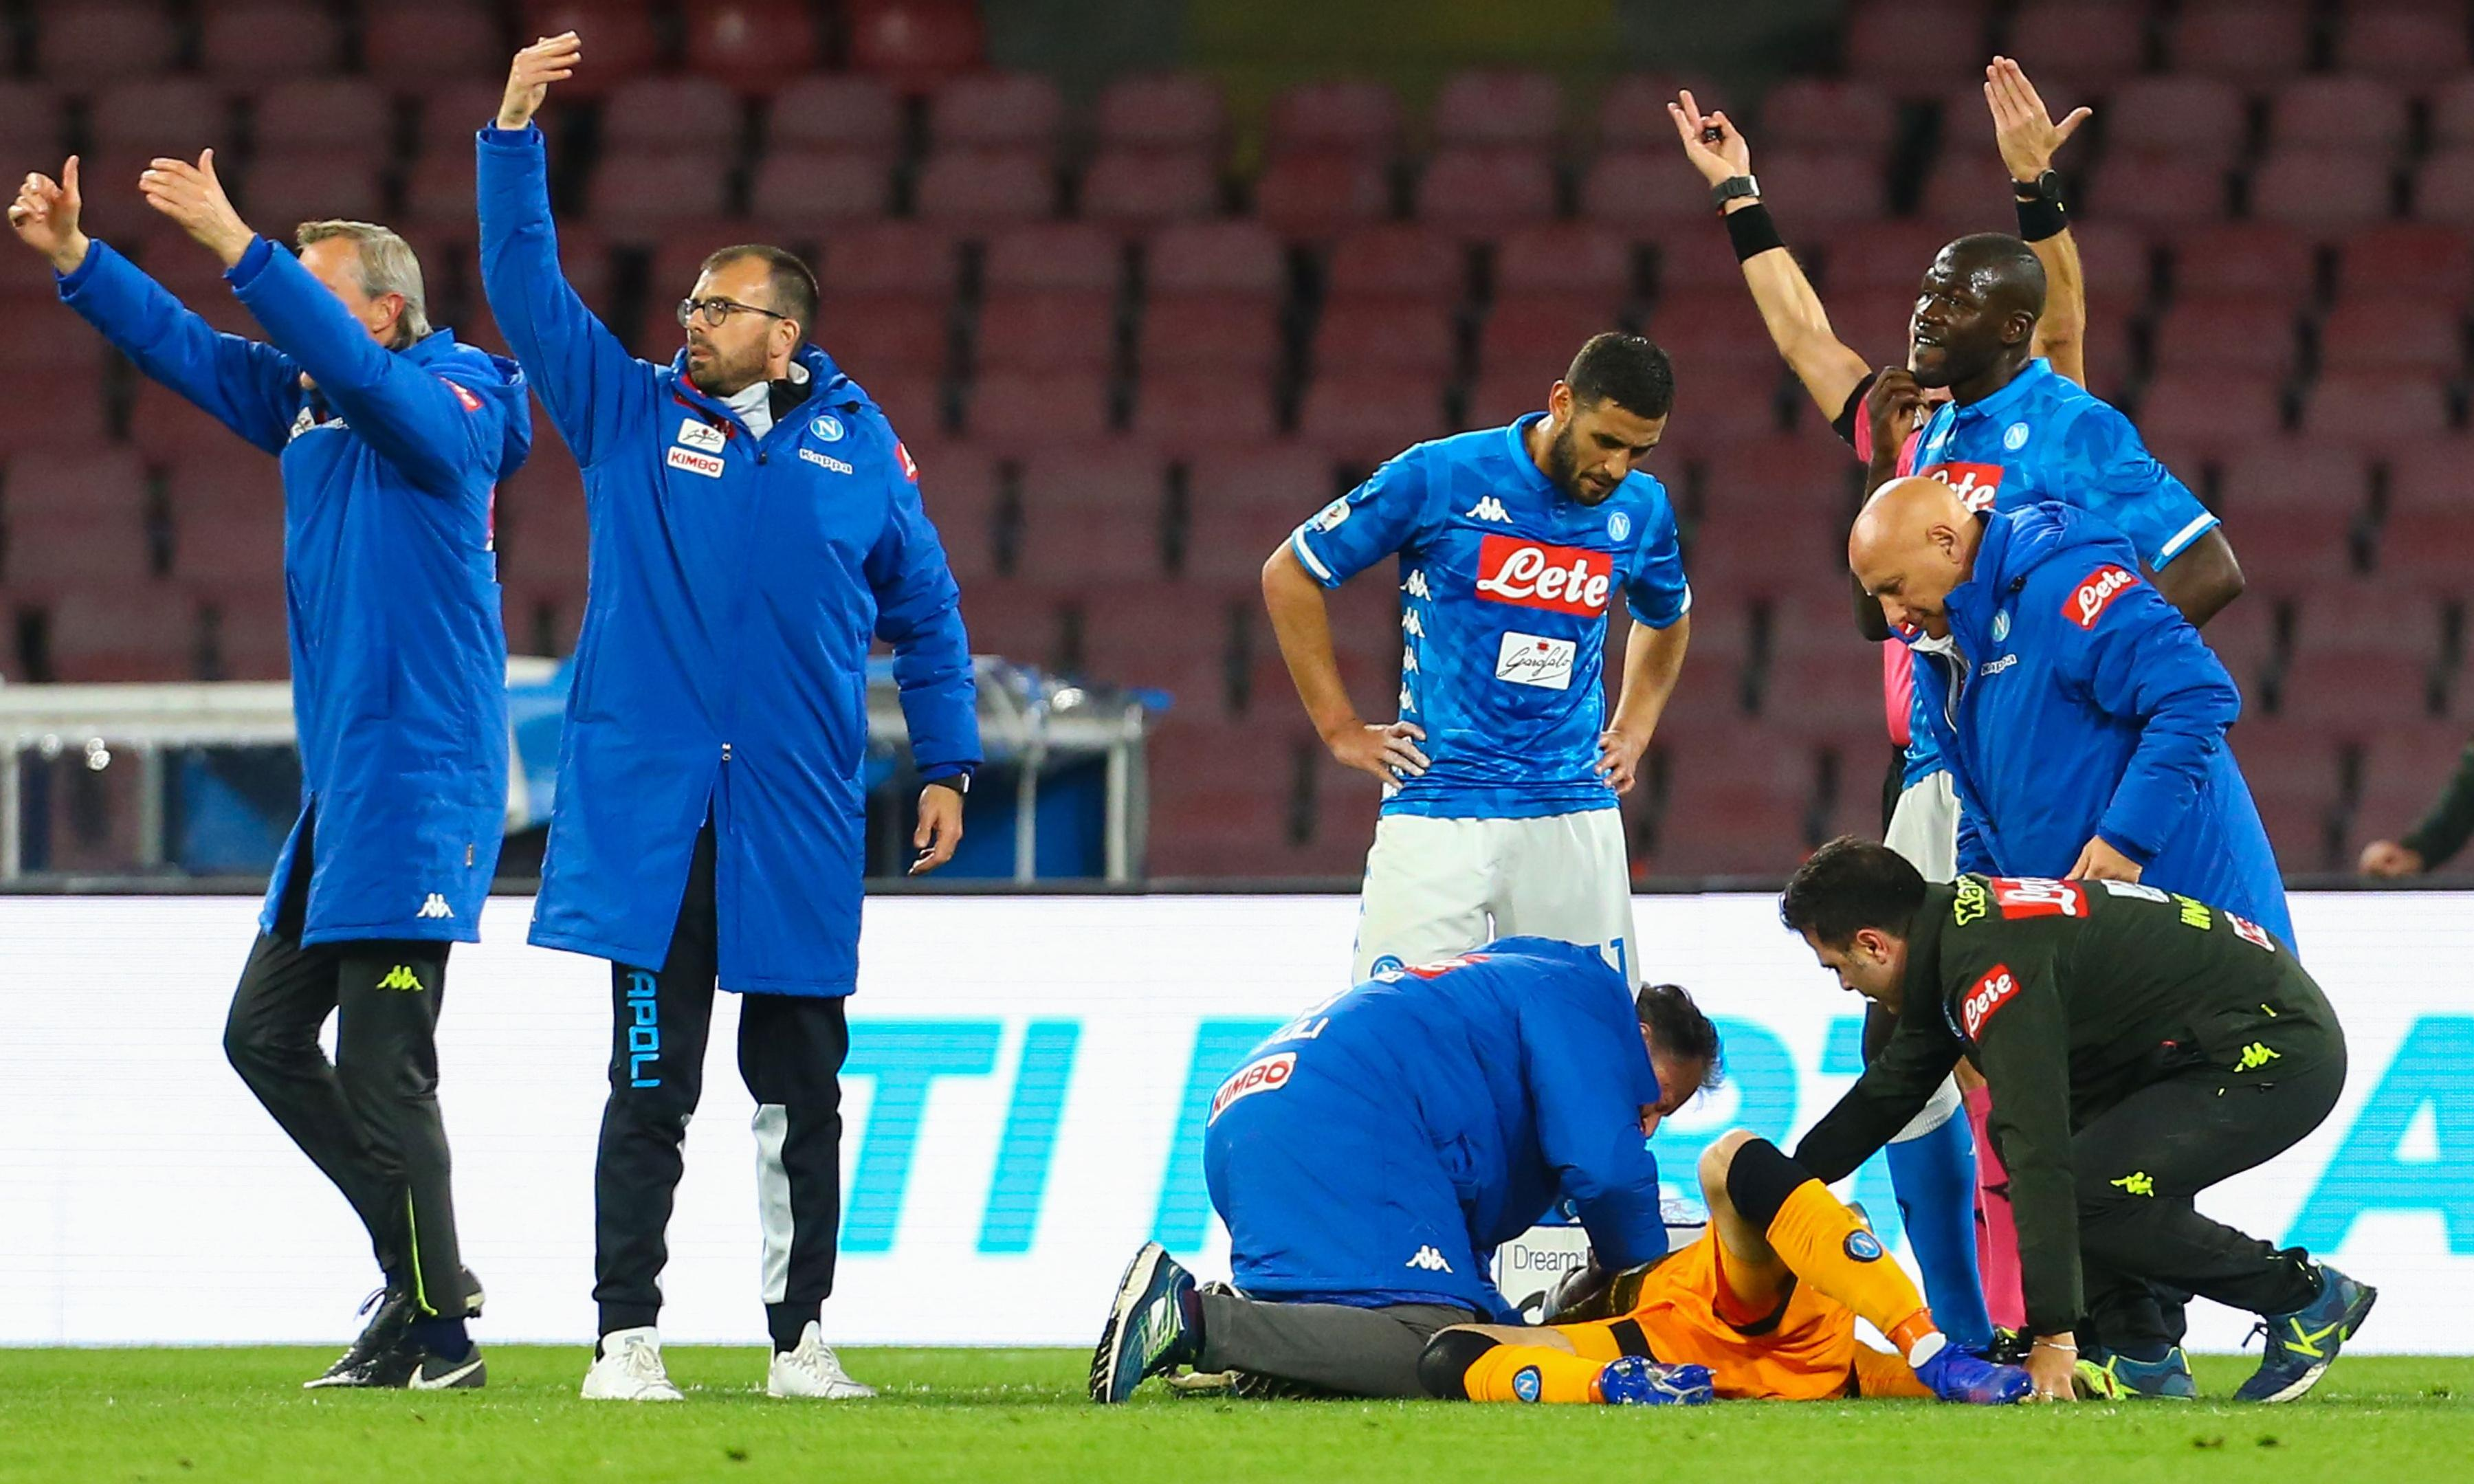 David Ospina discharged from hospital after collapsing during Napoli match